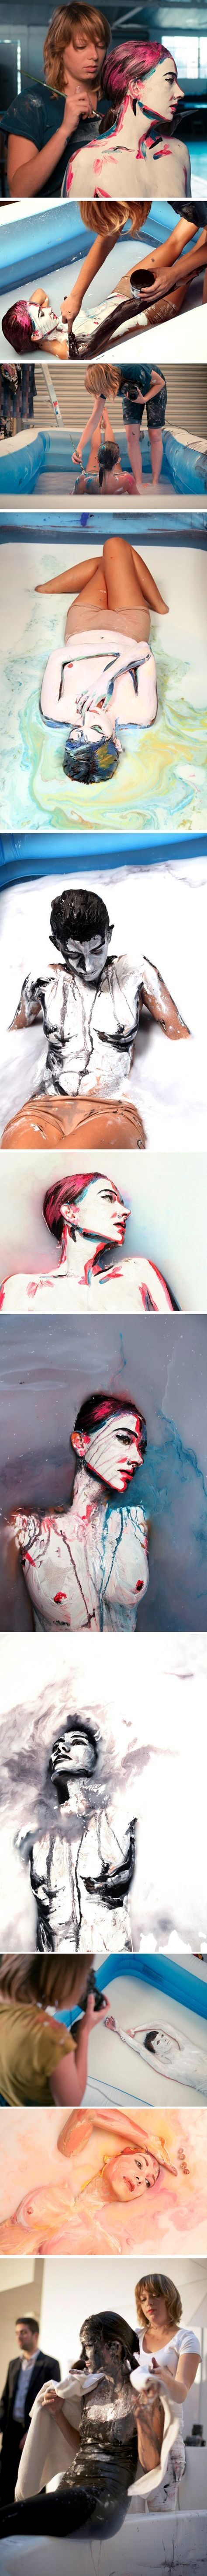 "Artists Alexa Meade and Sheila Vand have teamed up to create ""MILK: what will you make of me?"" Alexa paints Sheila's portrait directly on top of her body before Sheila submerges in a pool of milk."